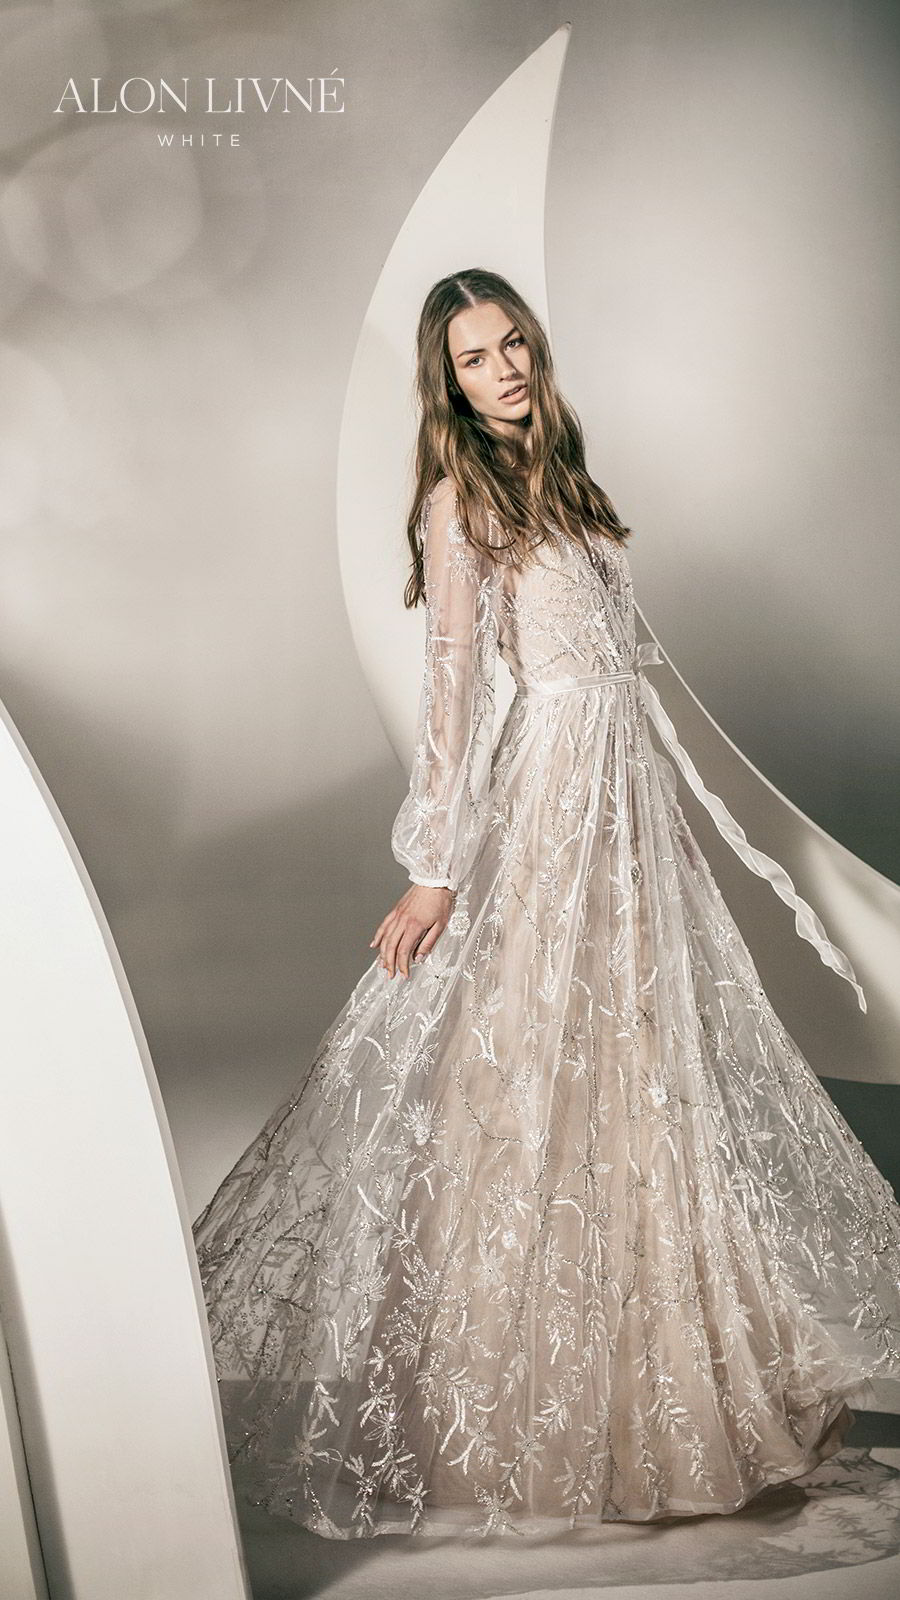 alon livne white spring 2020 bridal illusion long bishop sleeves surplice v neckline fully embellished a line lace wedding dress (natalie) romantic boho chic mv